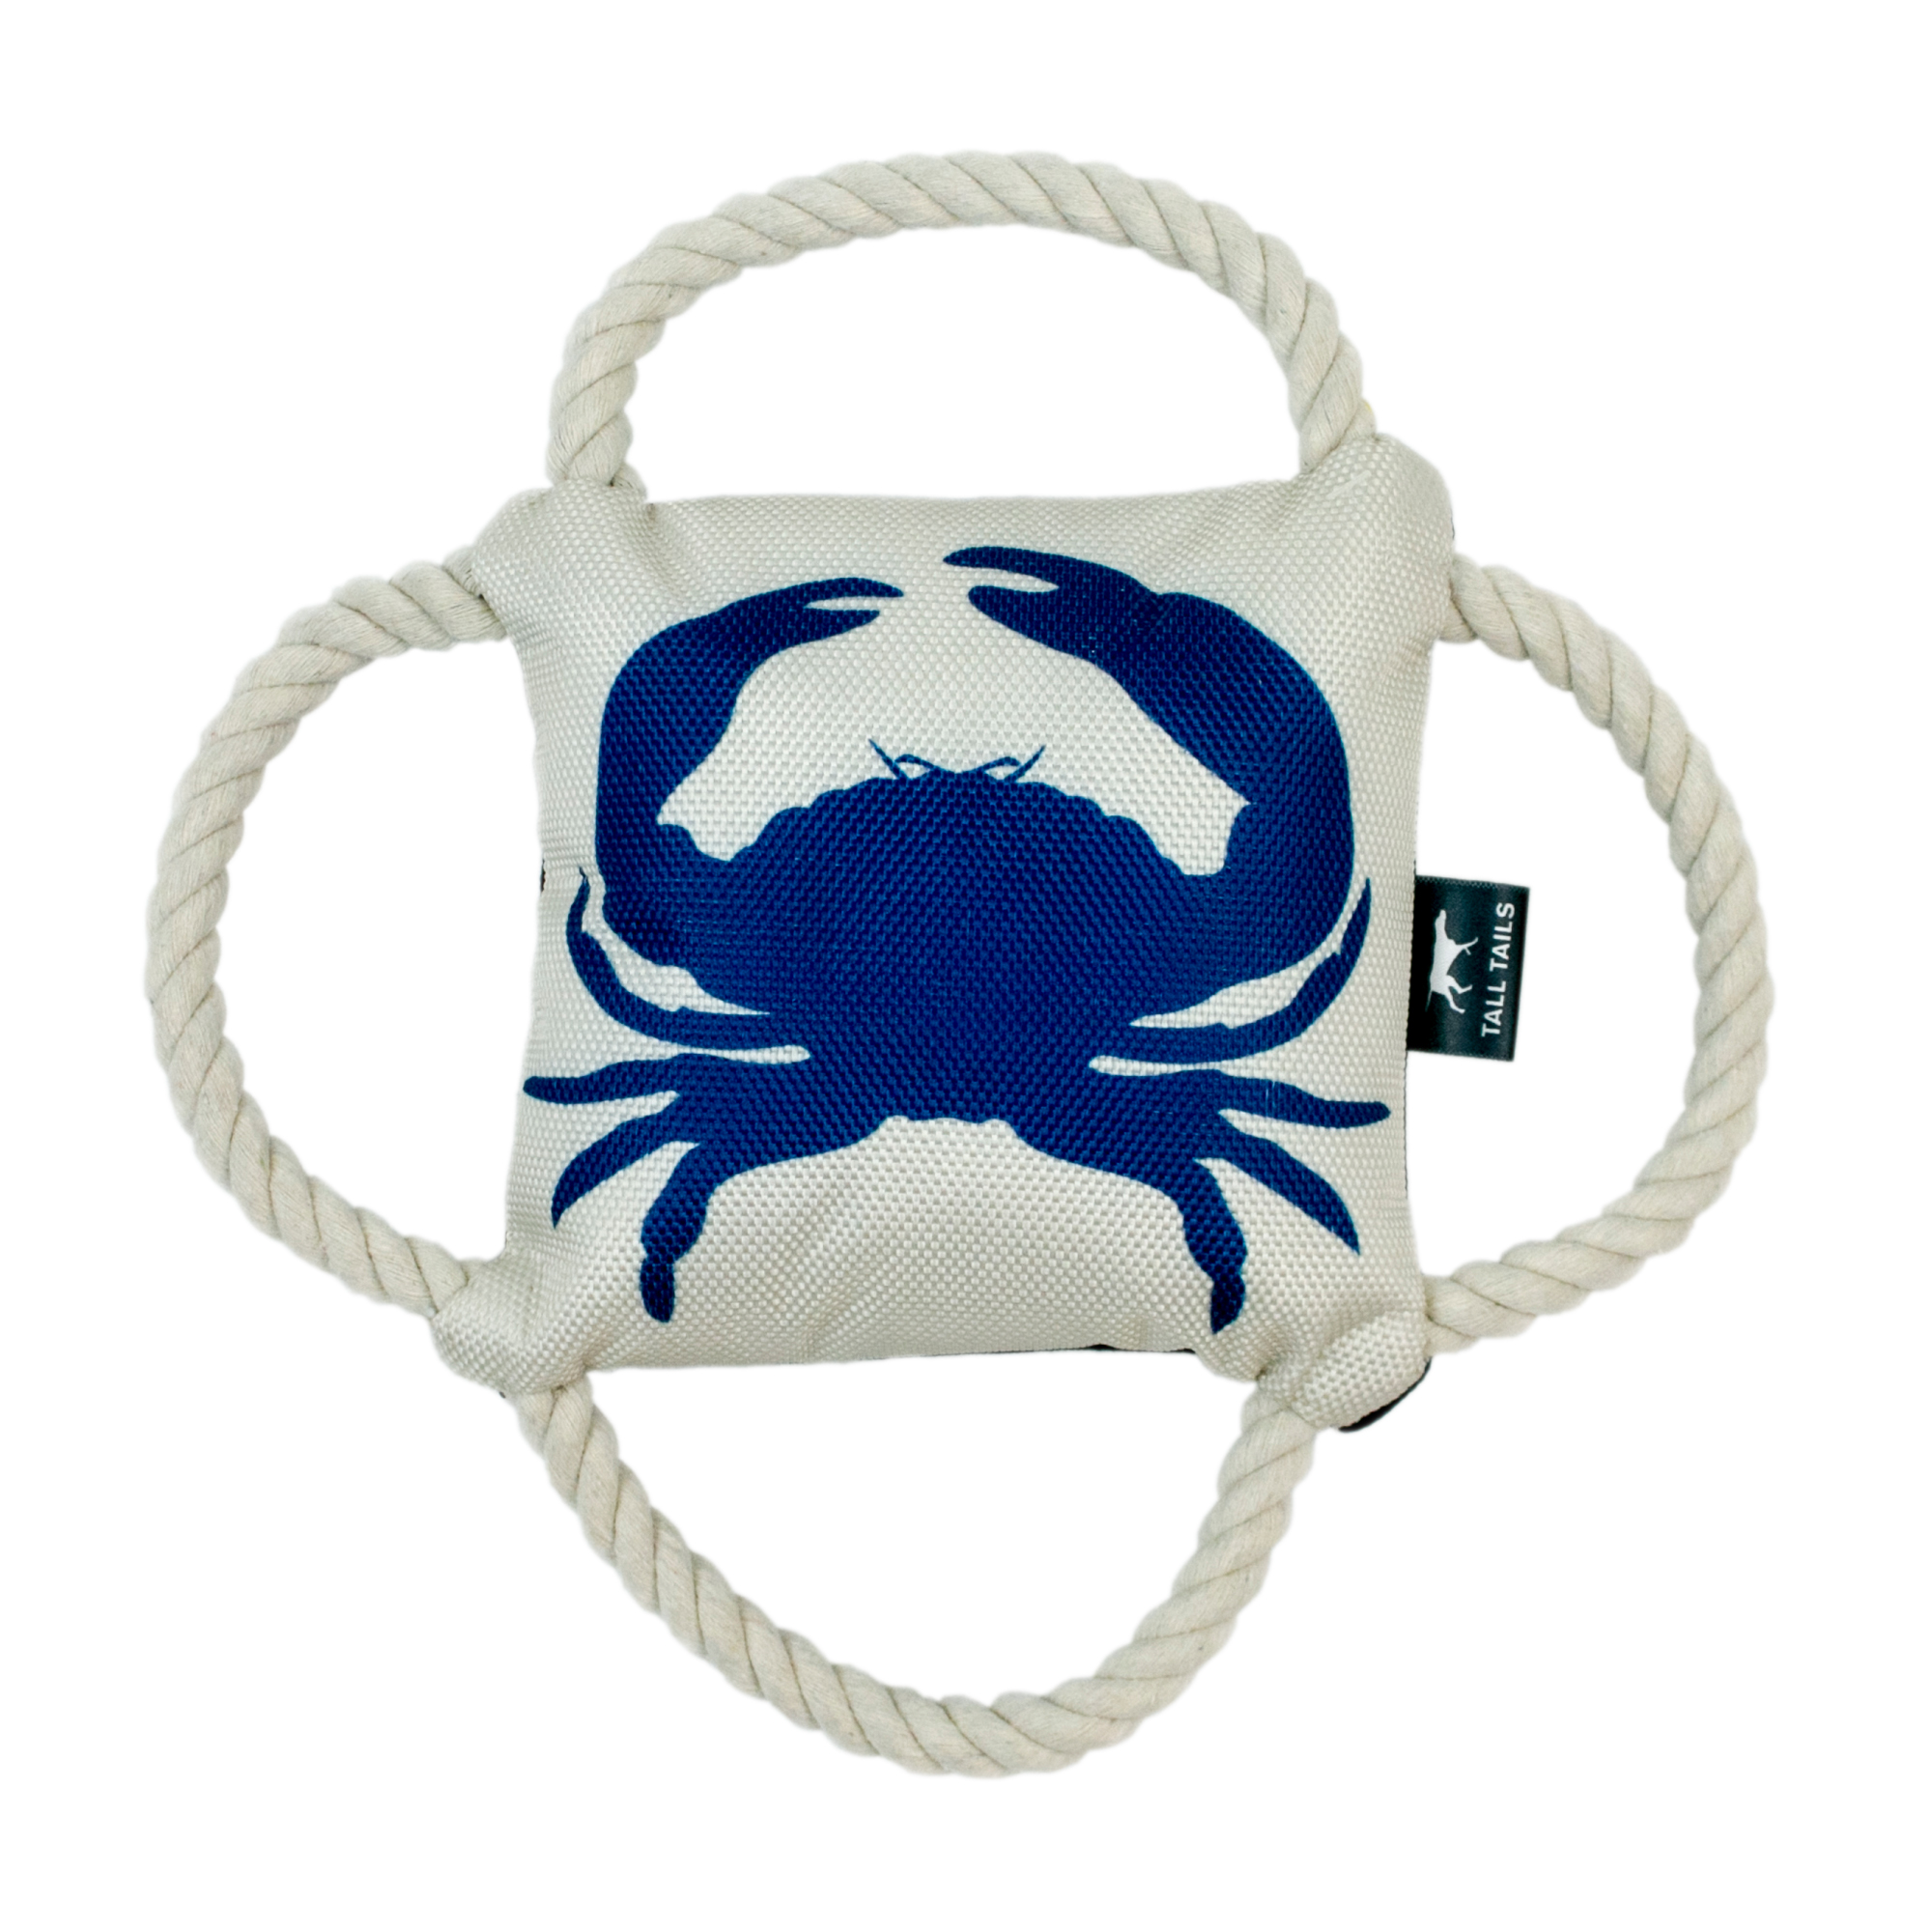 Tall Tails 4-Way Blue Crab Tug Dog Toy